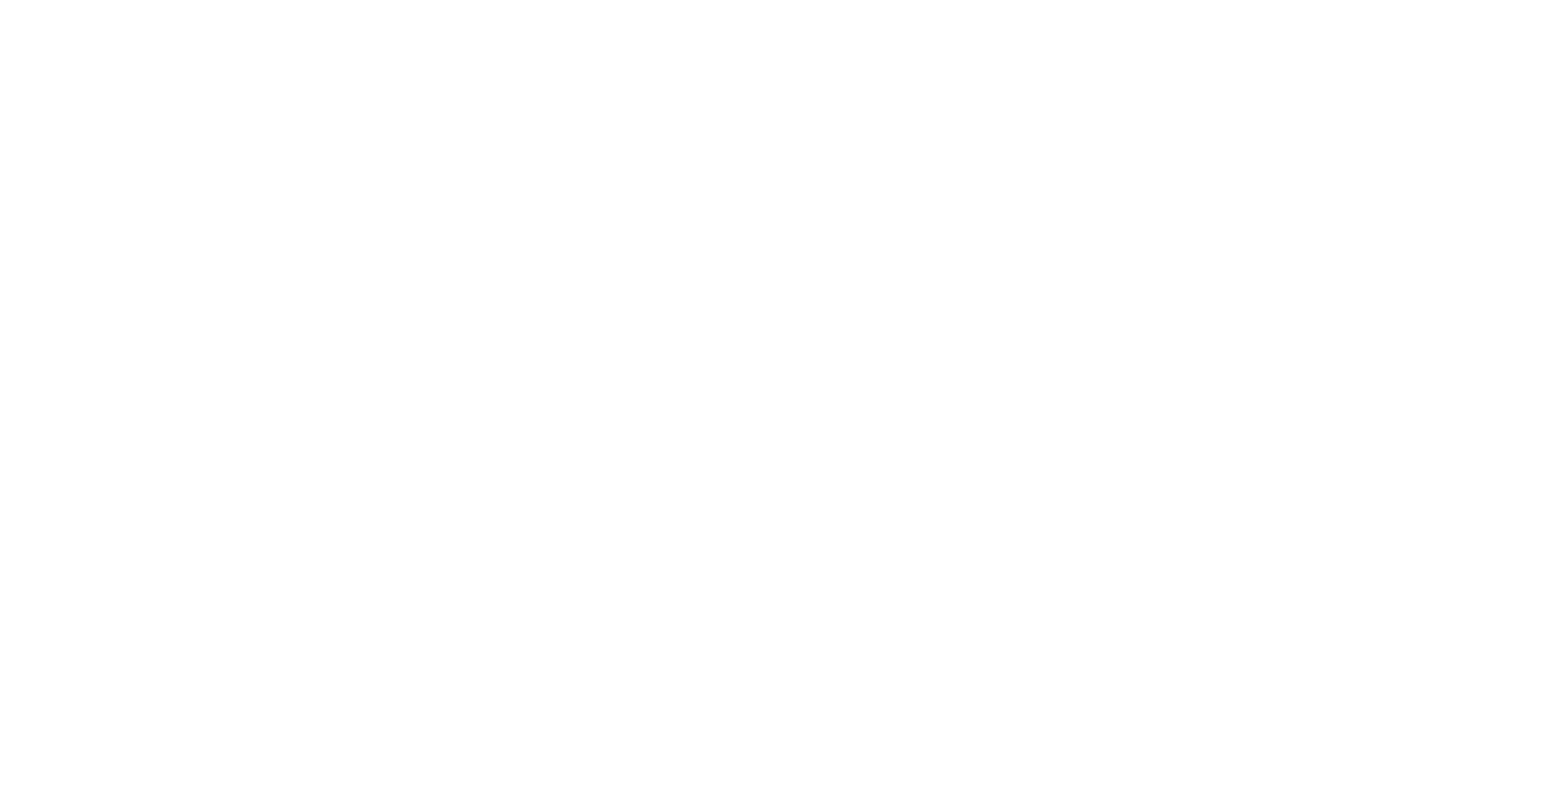 Williams_Kilpatrick_FullLockup_White (1)